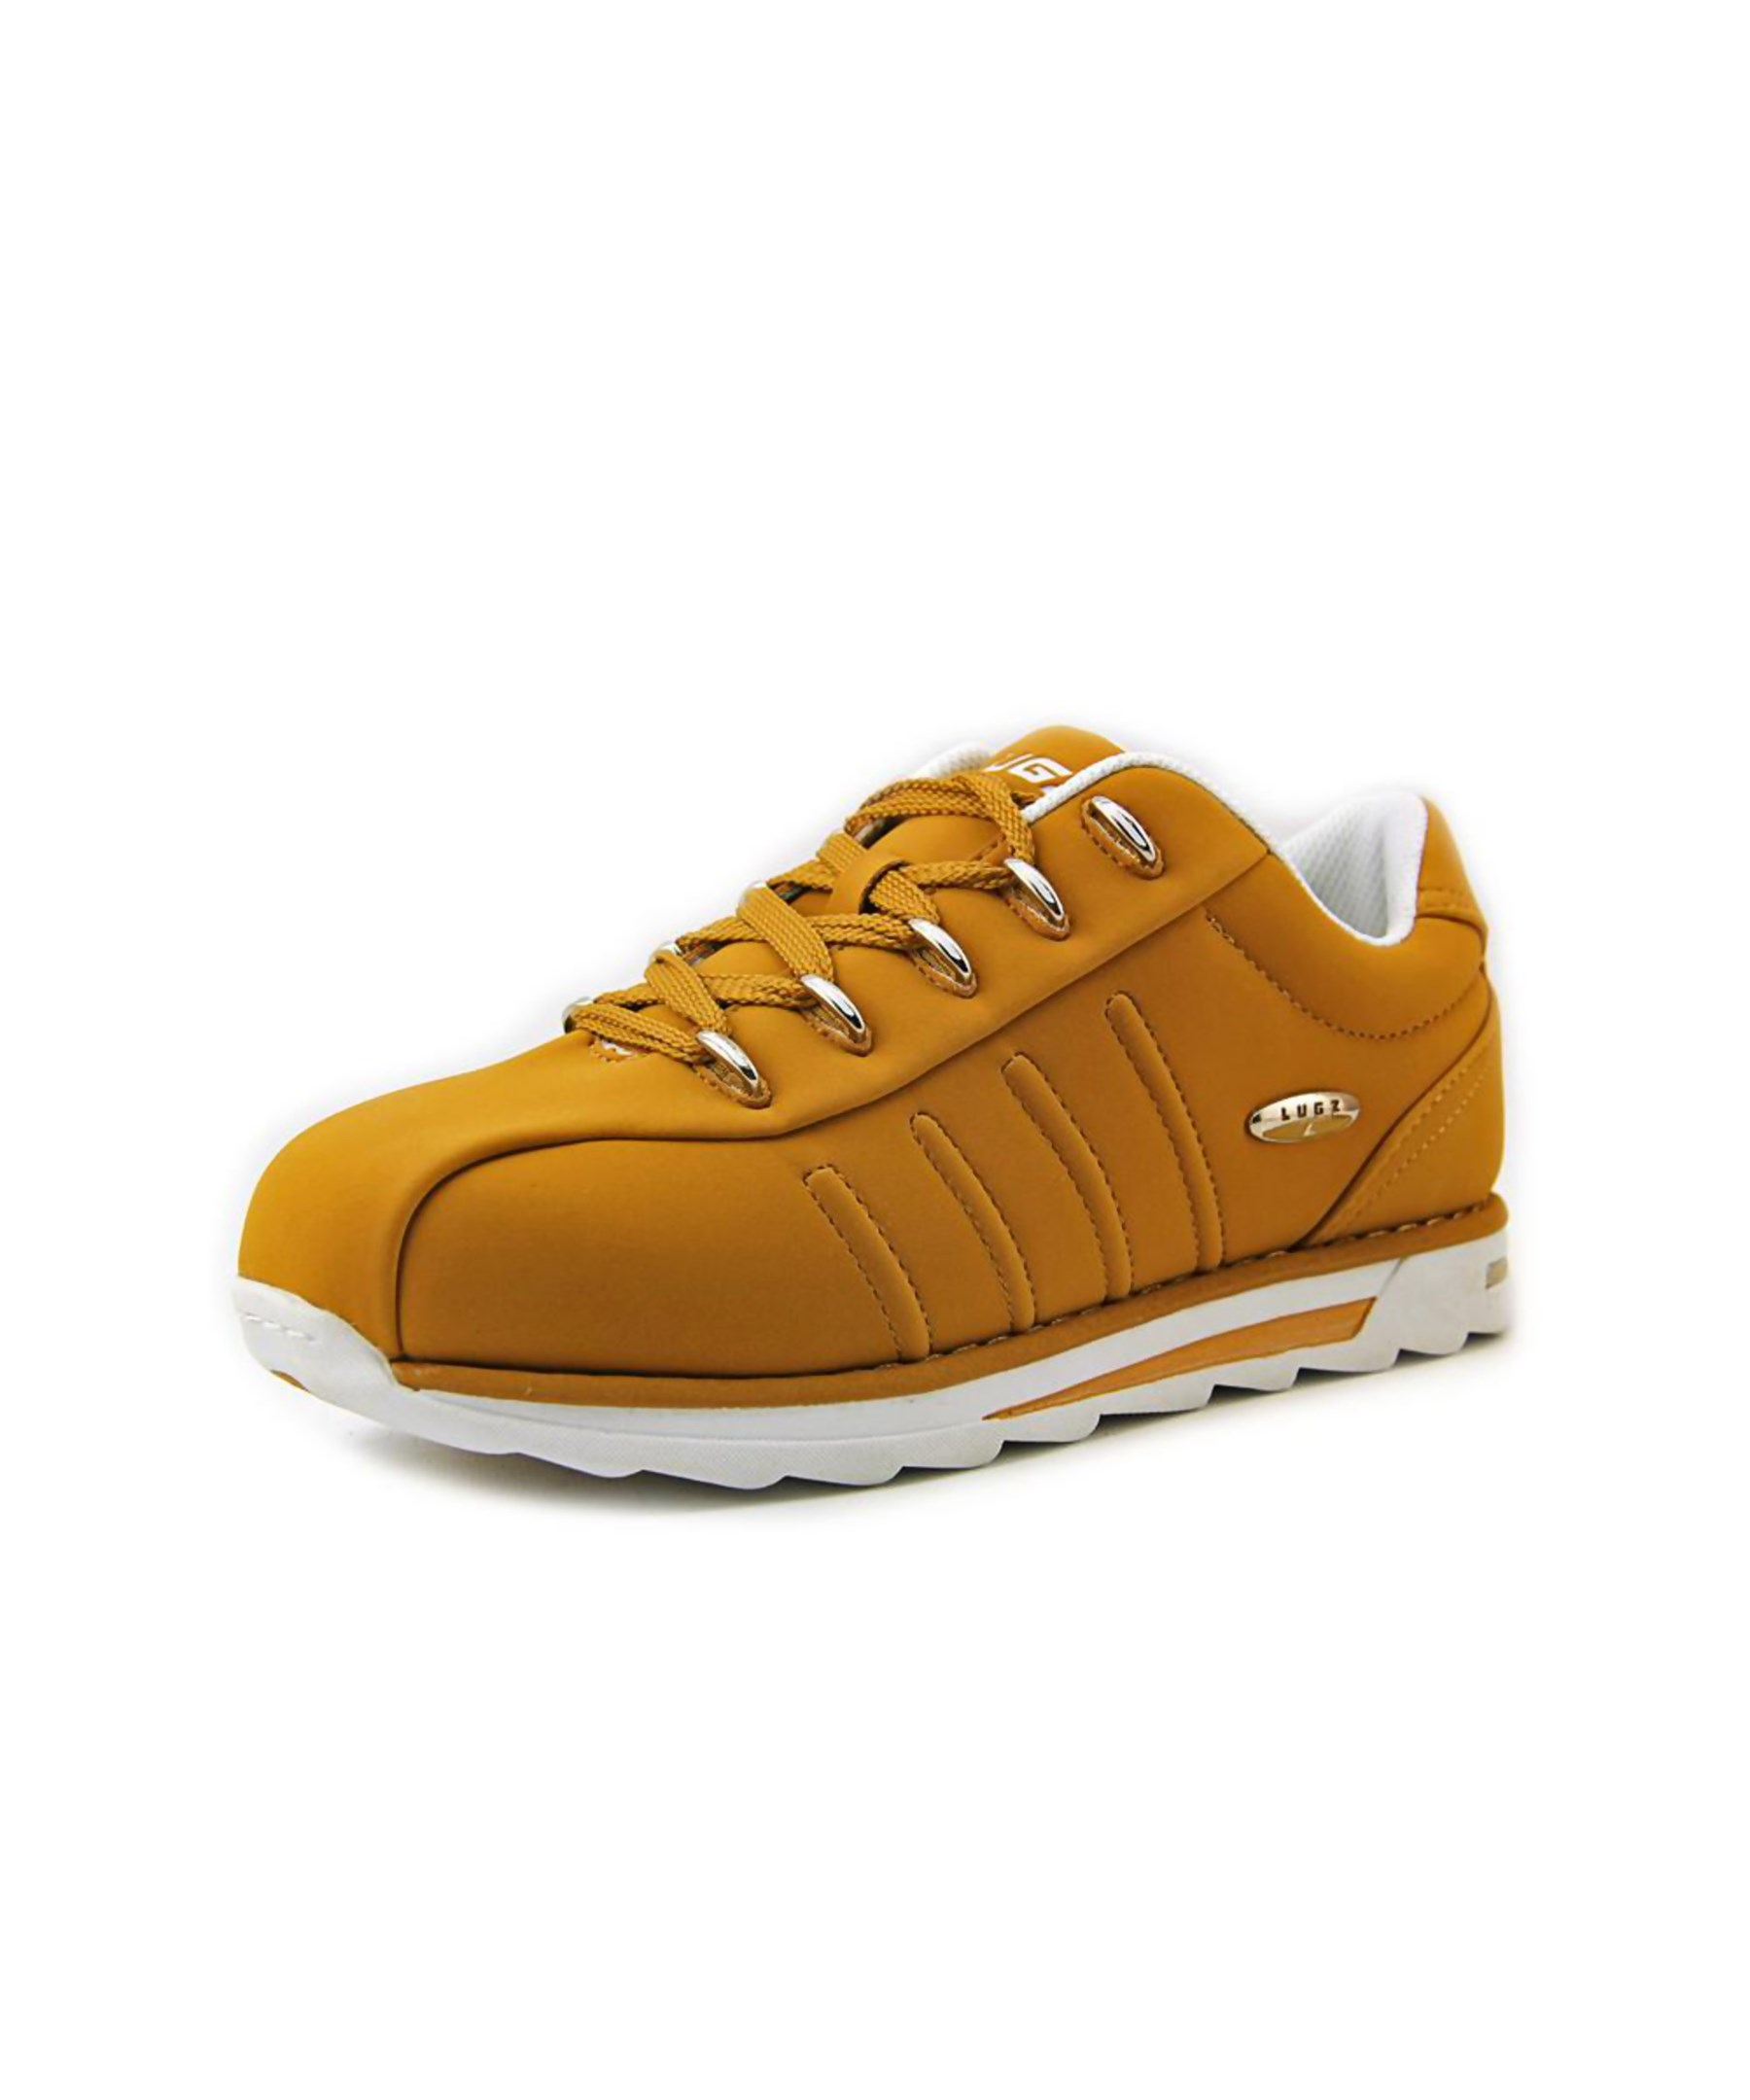 Lugz Changeover Round Toe Synthetic Sneakers In Brown Lyst